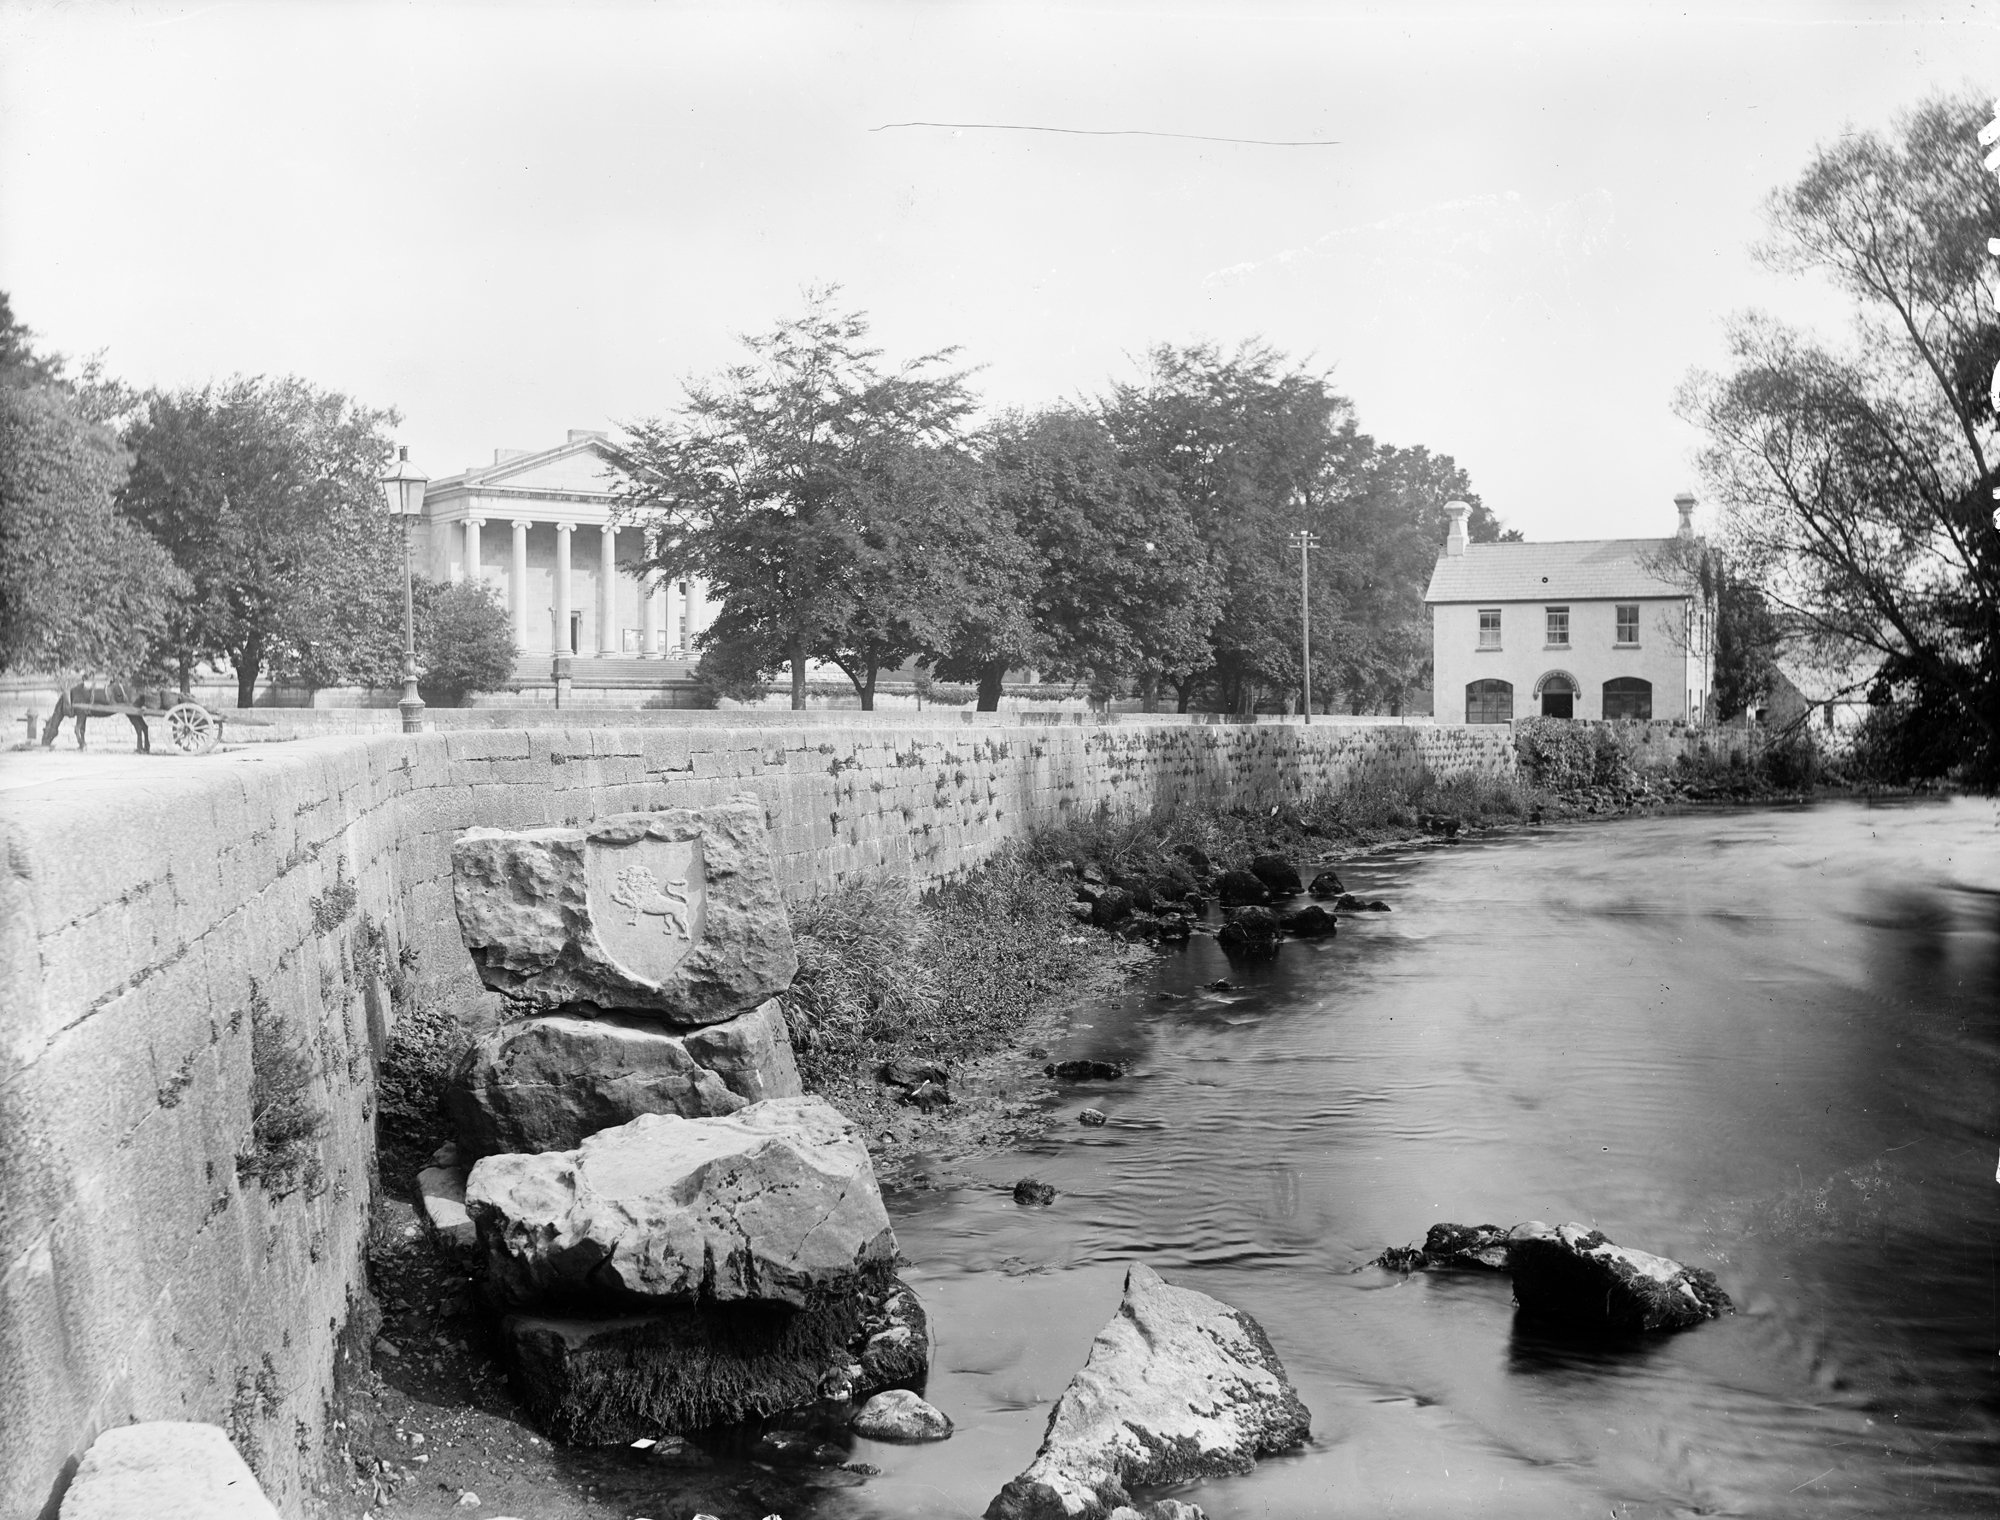 Steel's Rock & Court House, Ennis, Co. Clare